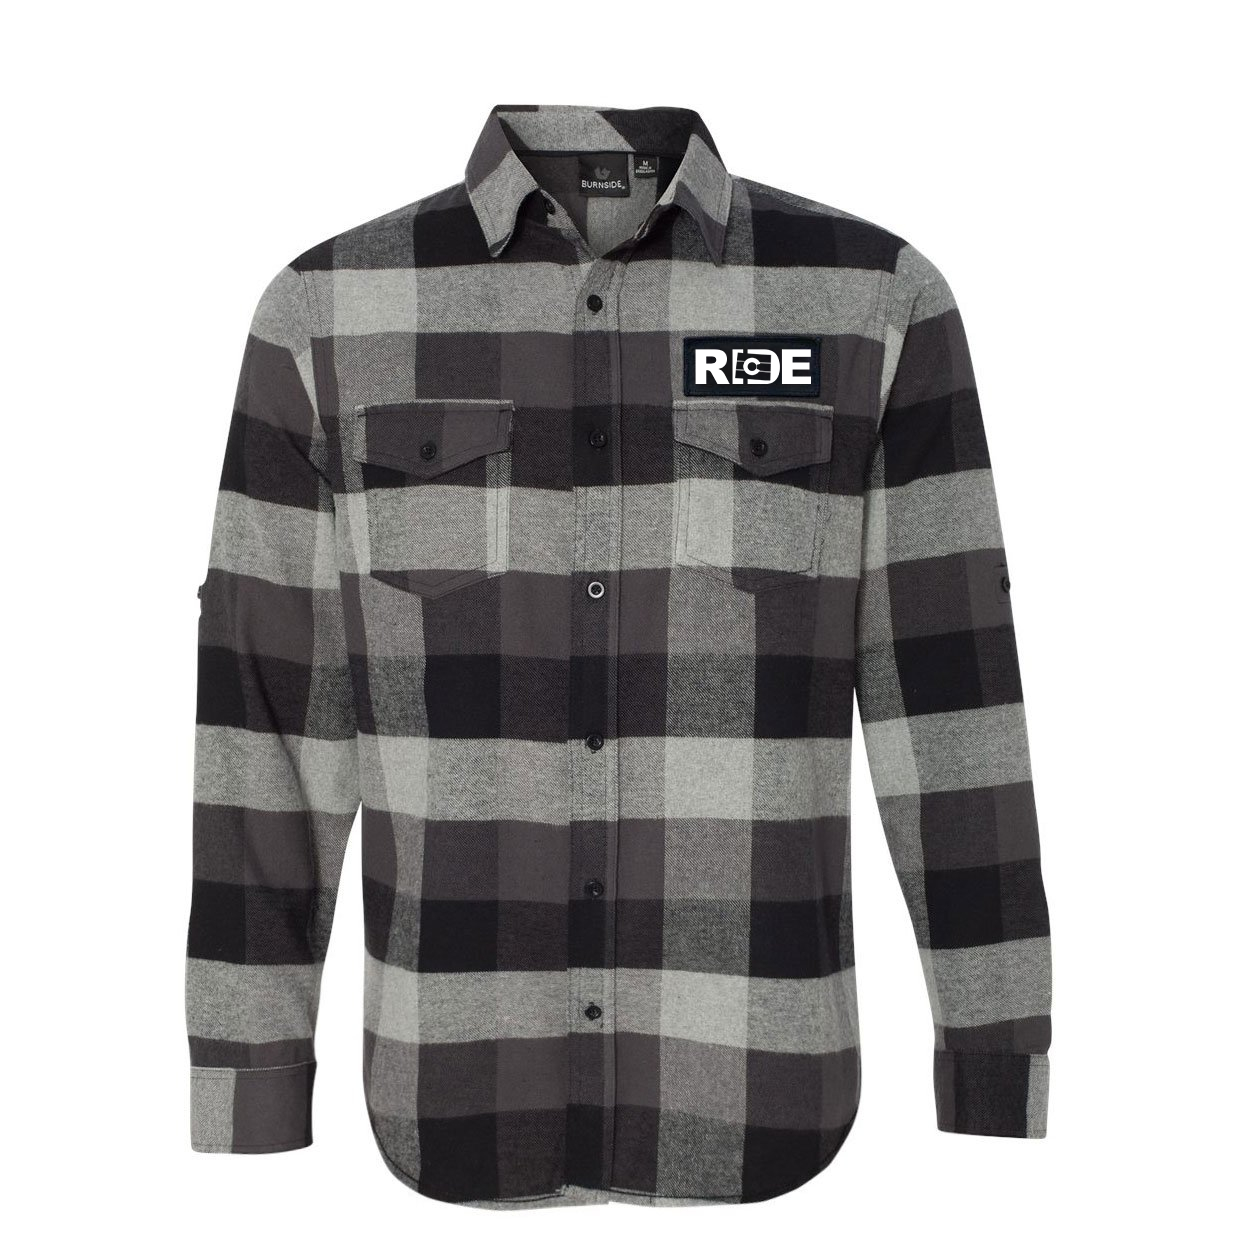 Ride Colorado Classic Unisex Long Sleeve Woven Patch Flannel Shirt Black/Gray (White Logo)